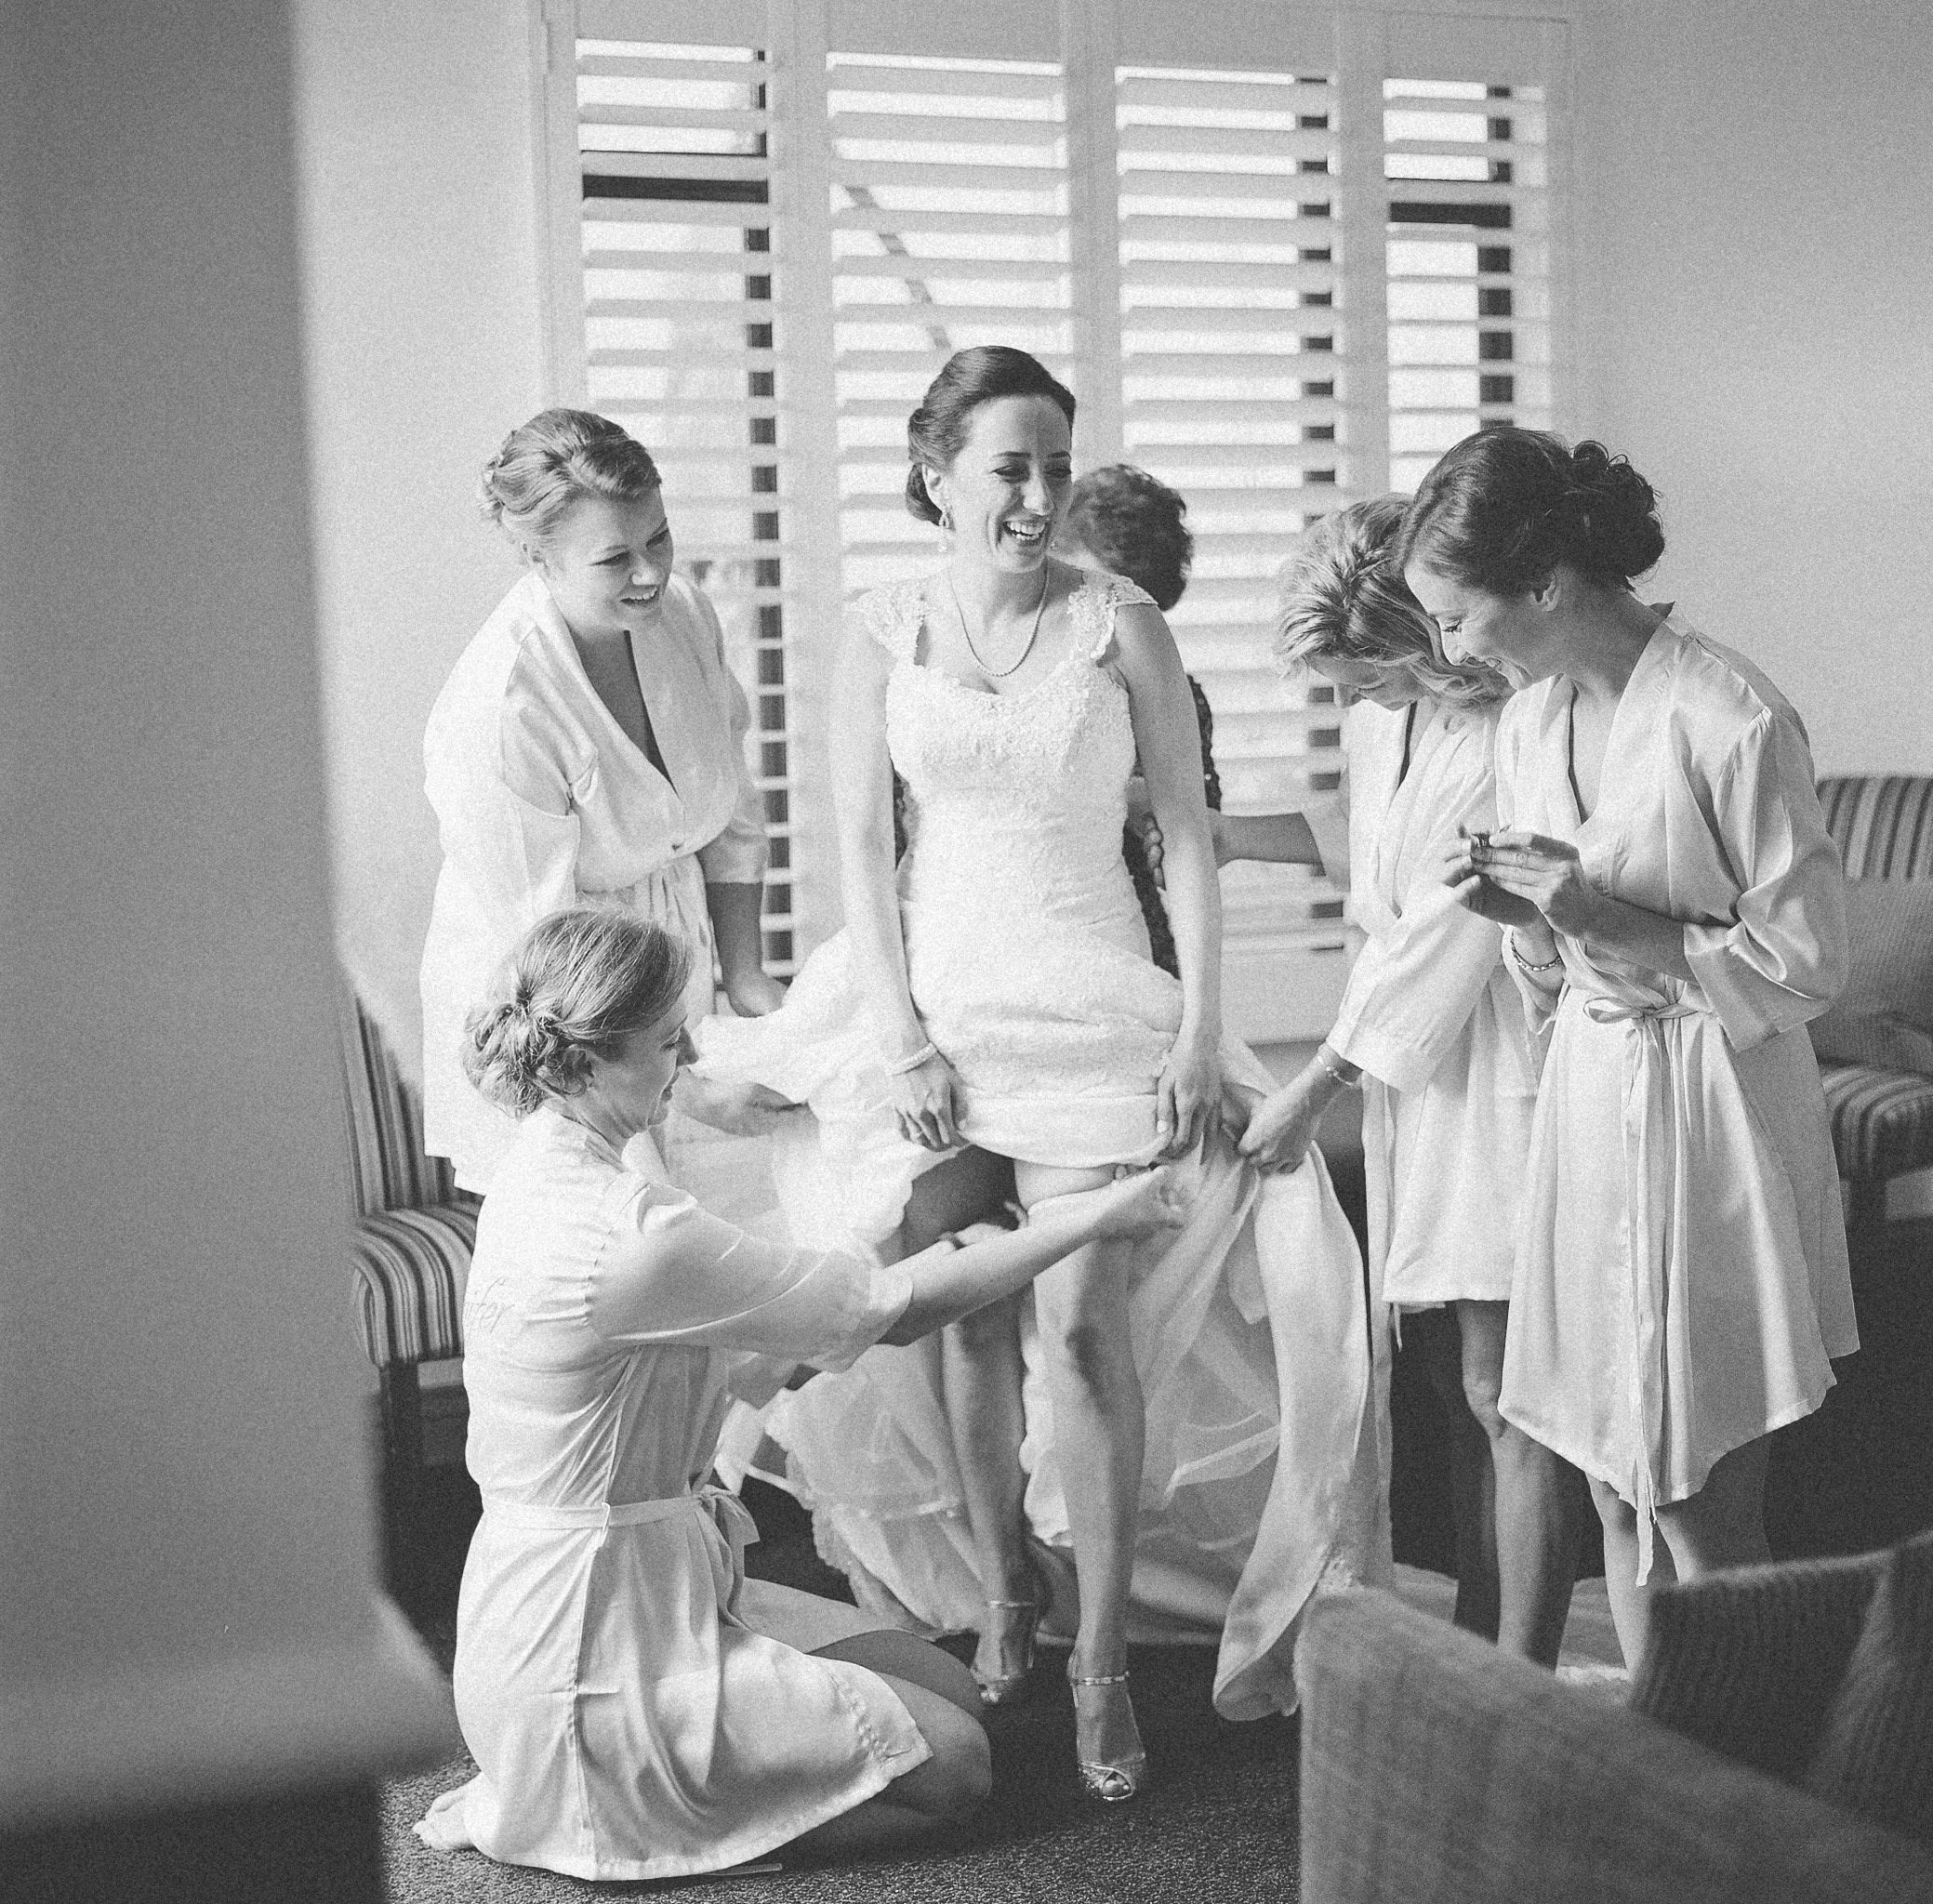 the bridesmaids all helping the bride get dressed!